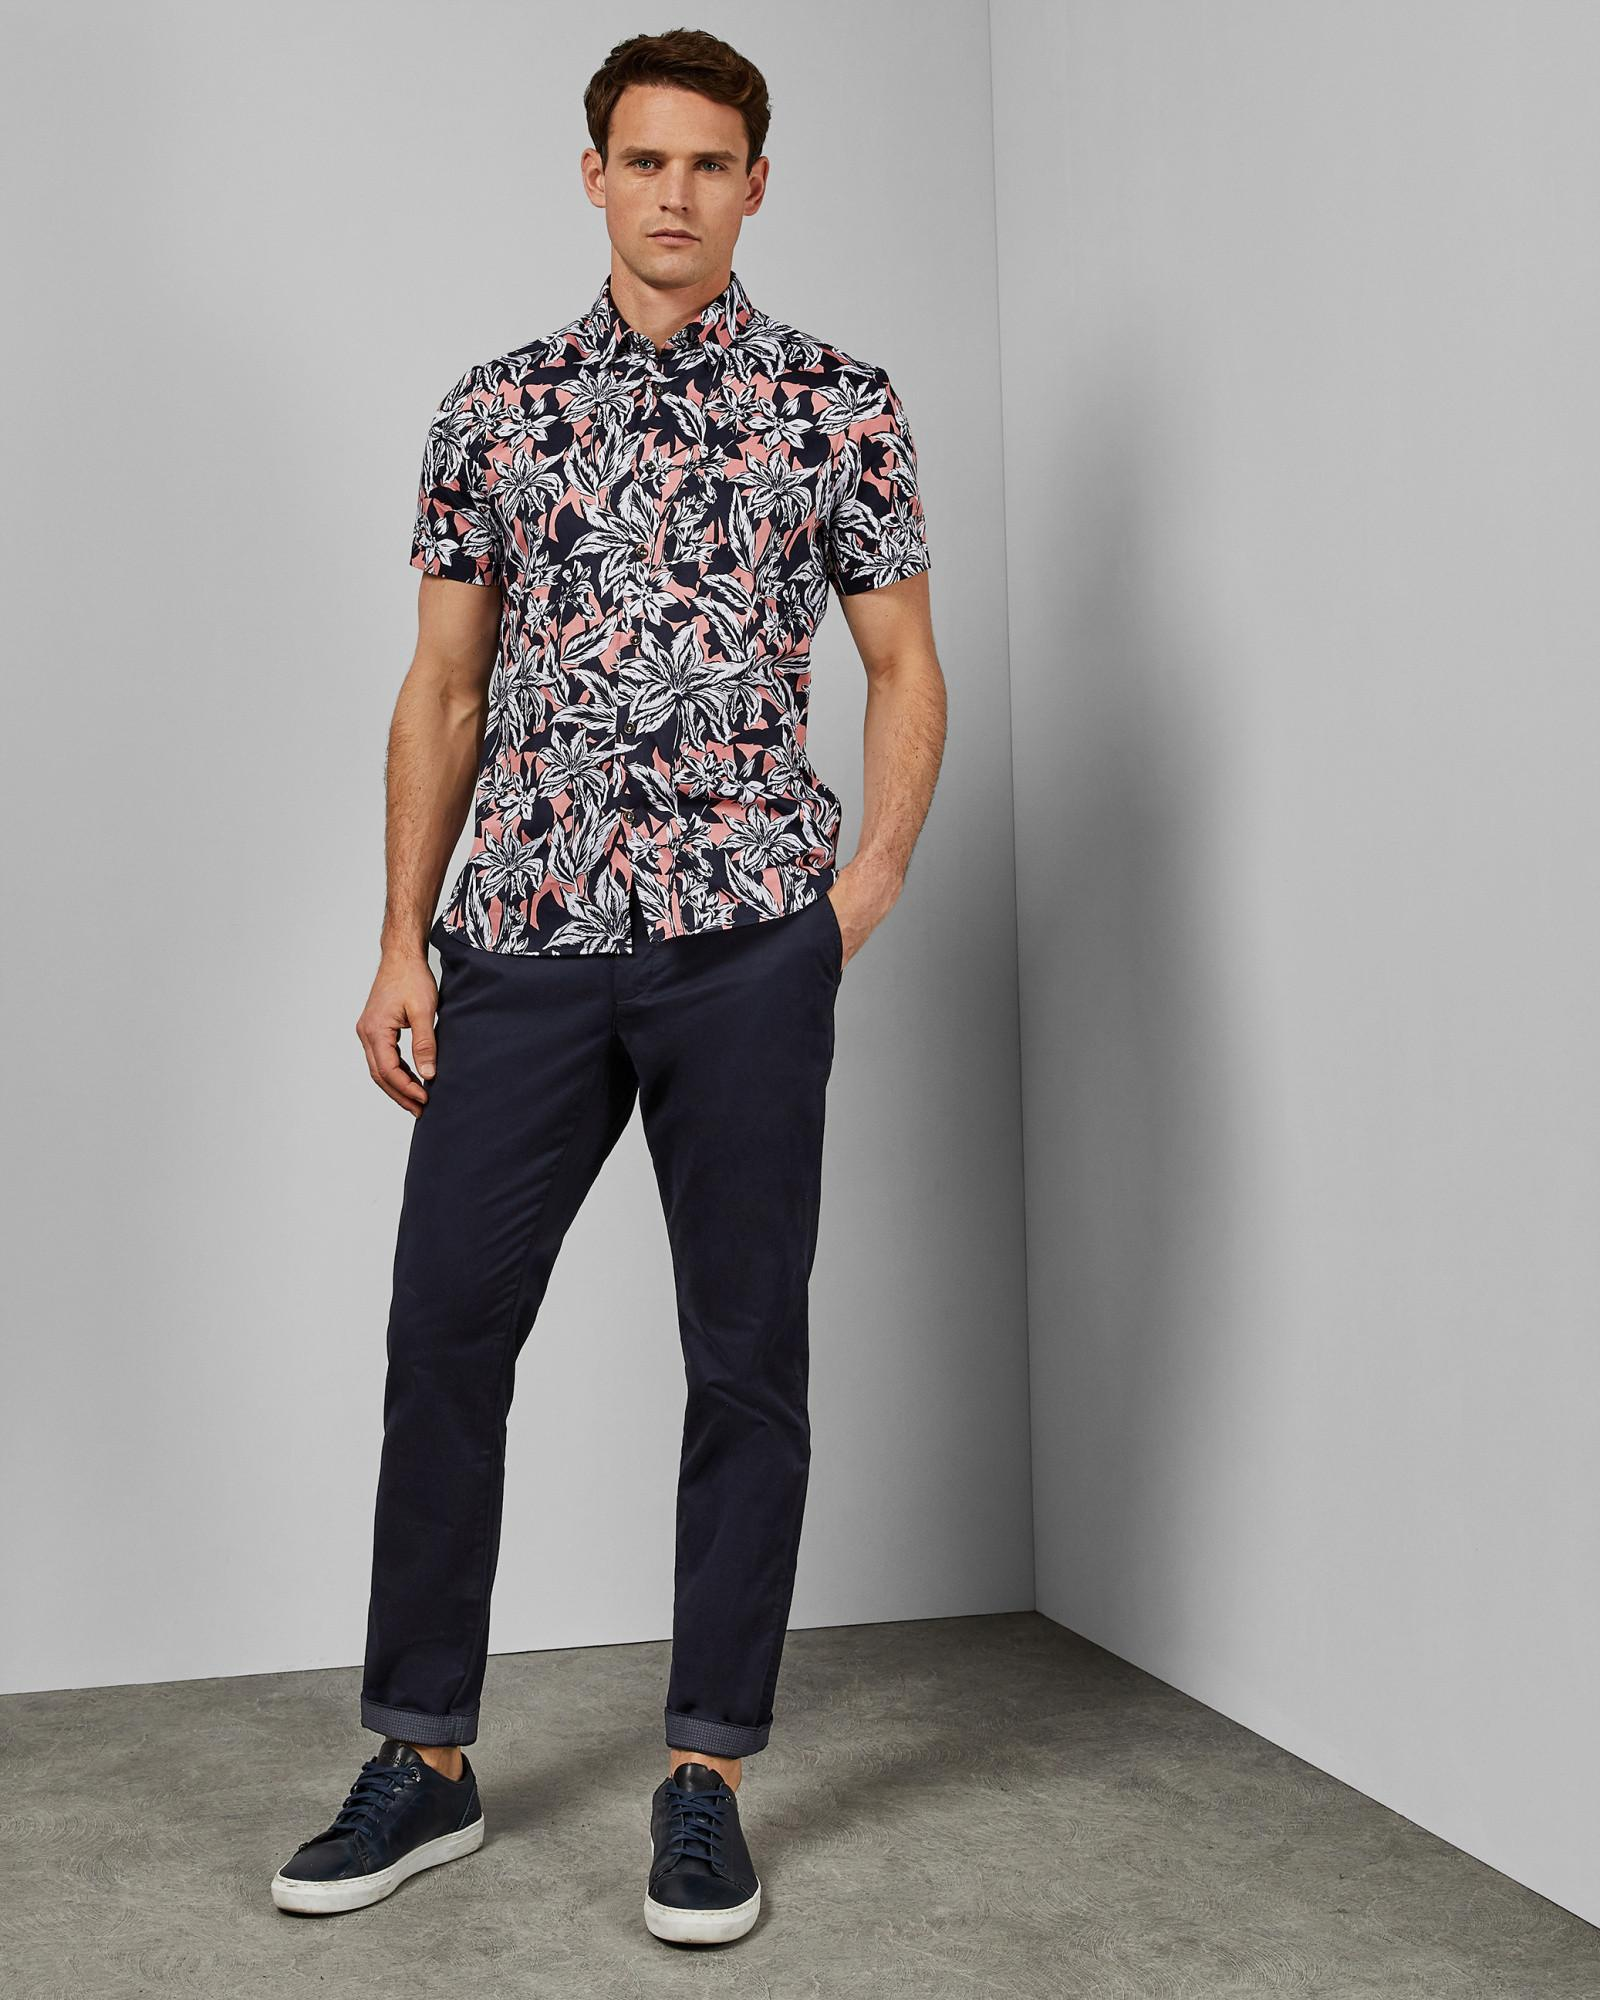 0433056b3cf7 Ted Baker Floral Print Cotton Shirt for Men - Lyst